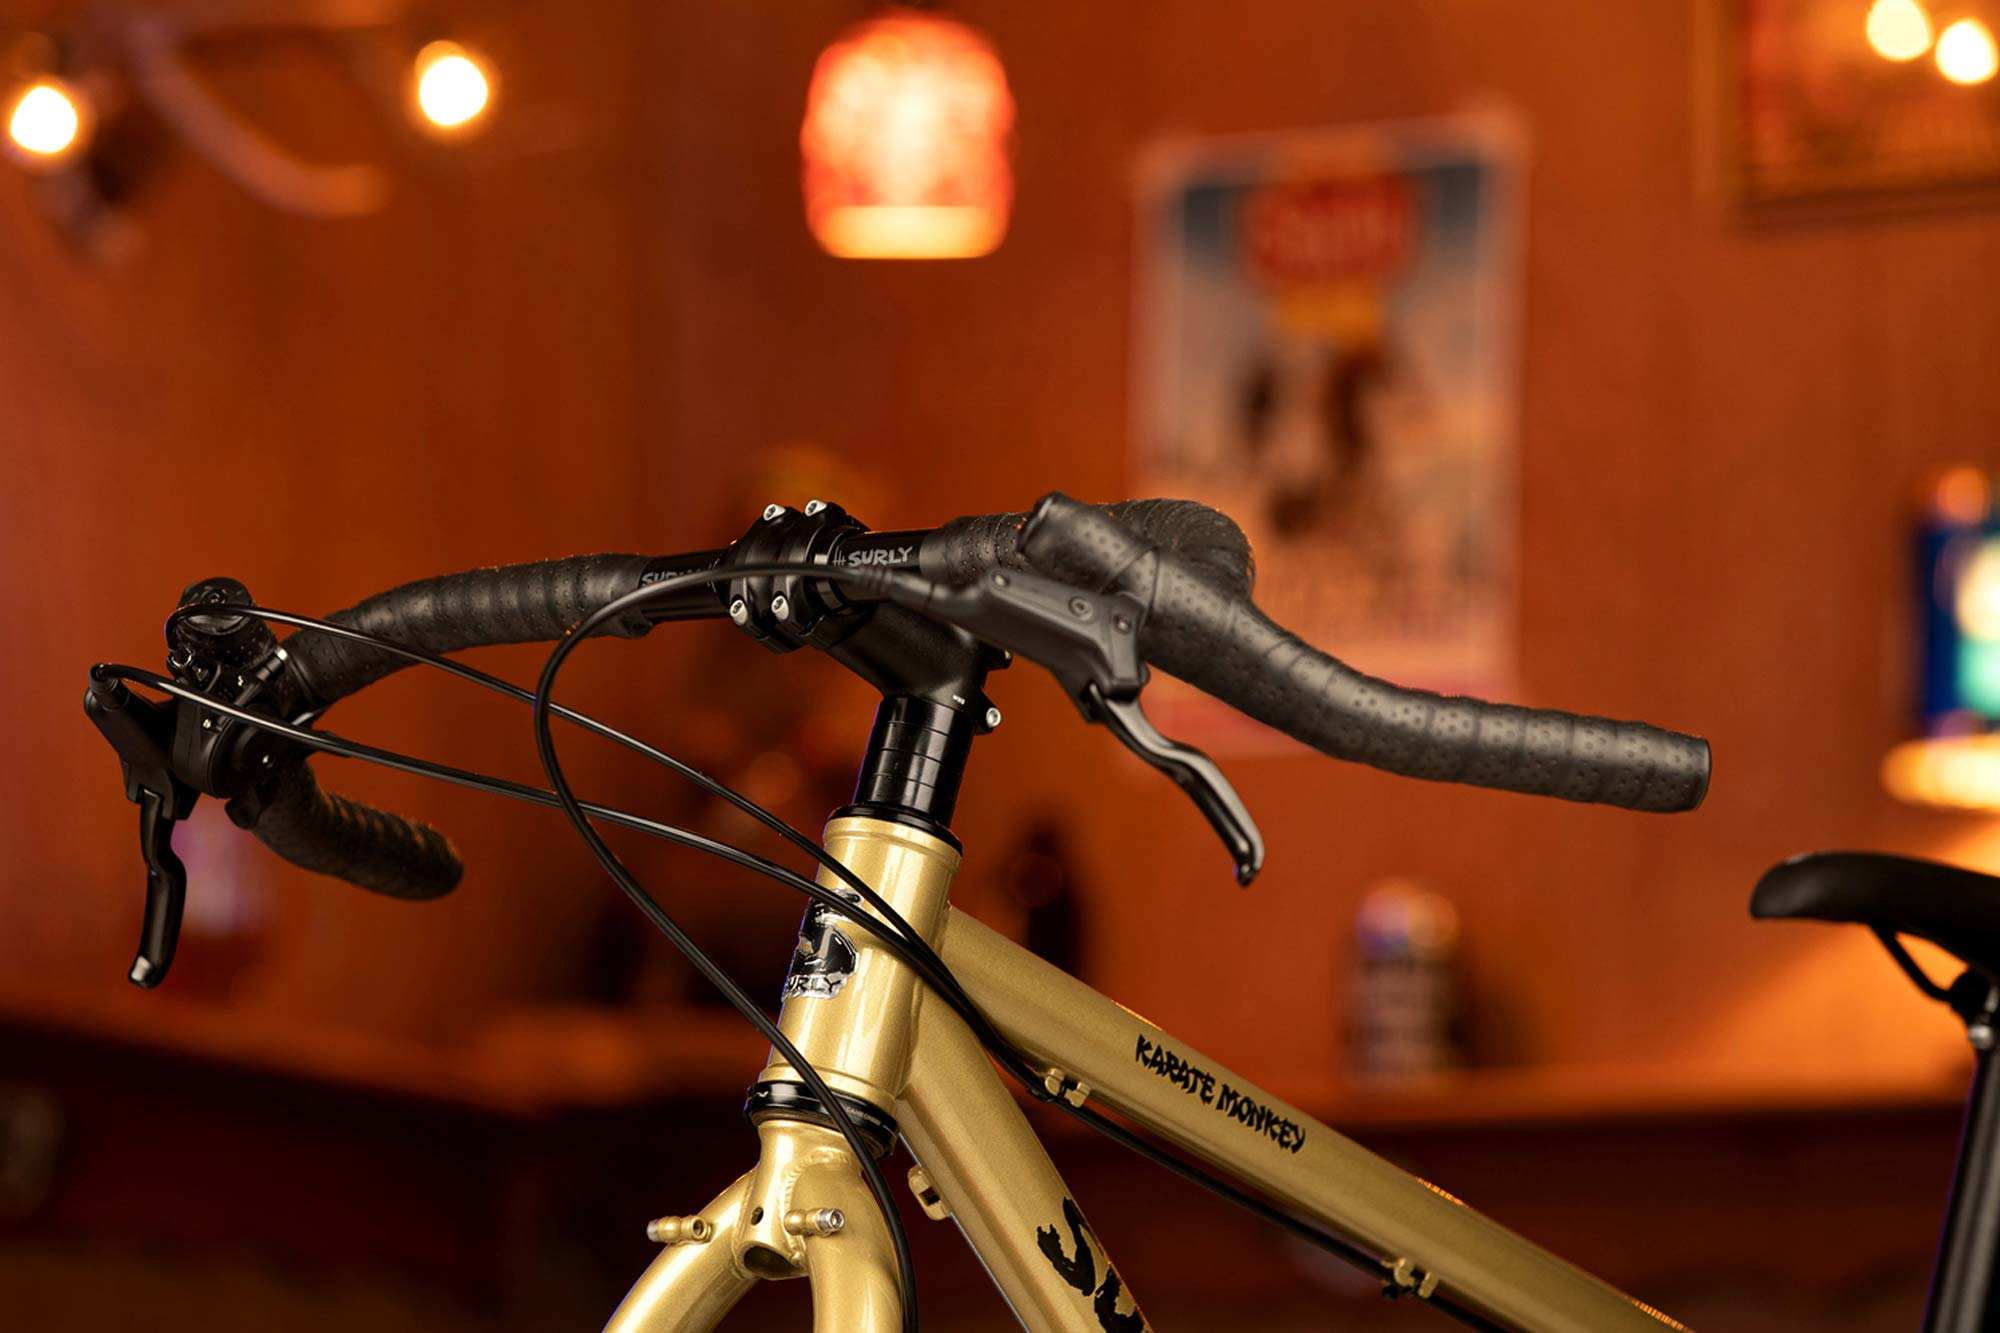 Surly Corner Bar wrapped with black bar tape on complete Surly Karate Monkey with mountain brake levers and shifter